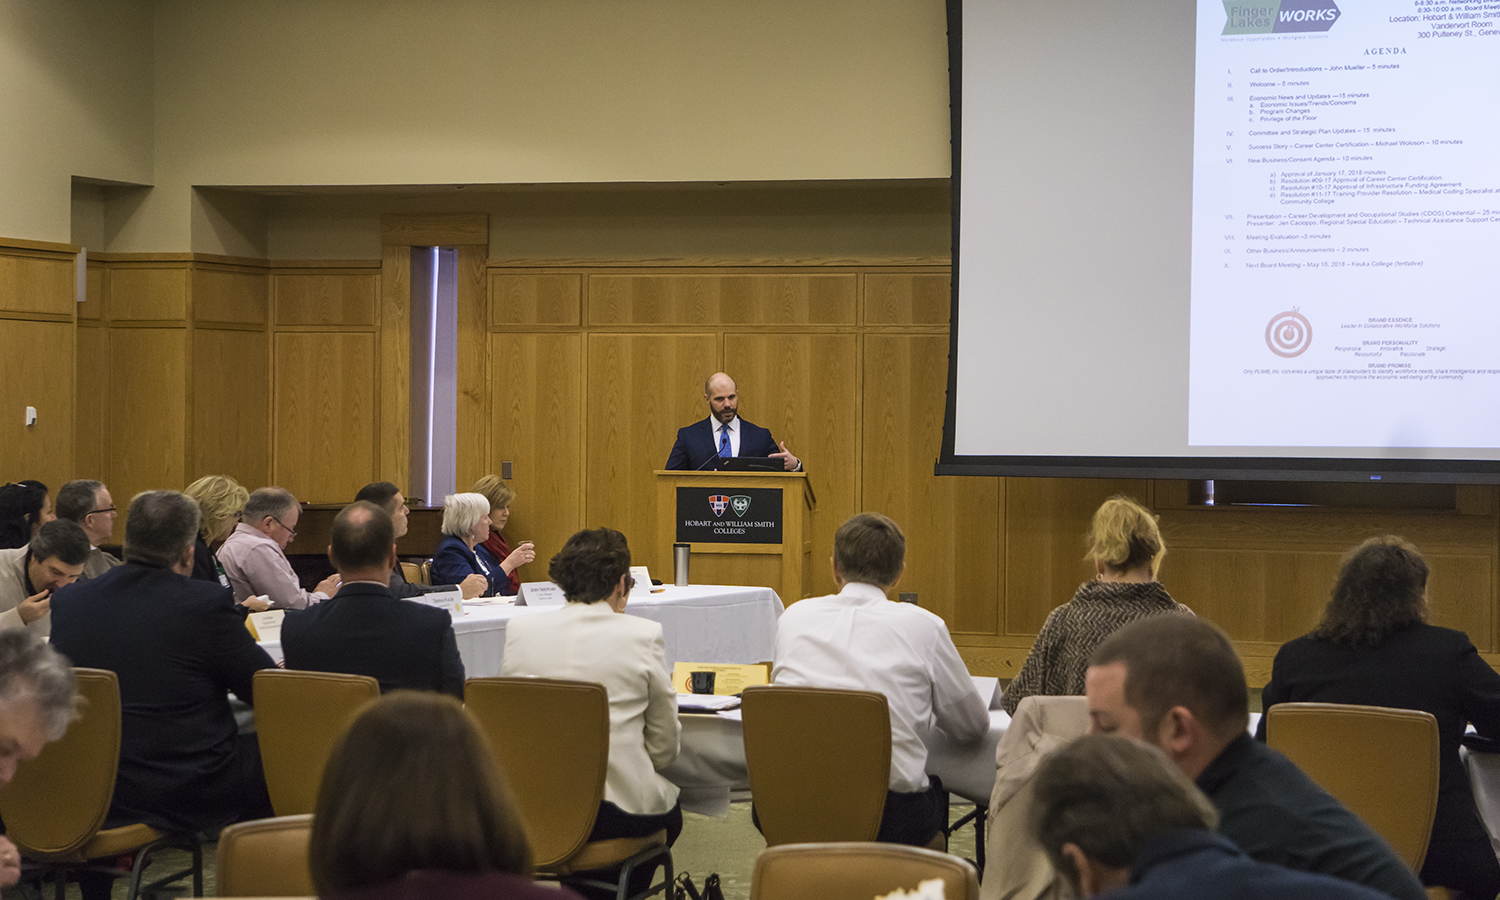 Vice President and General Counsel Louis H. Guard '07 welcomes Geneva community members for the FL Workforce Development Board of Directors meeting in the Vandervort Room.